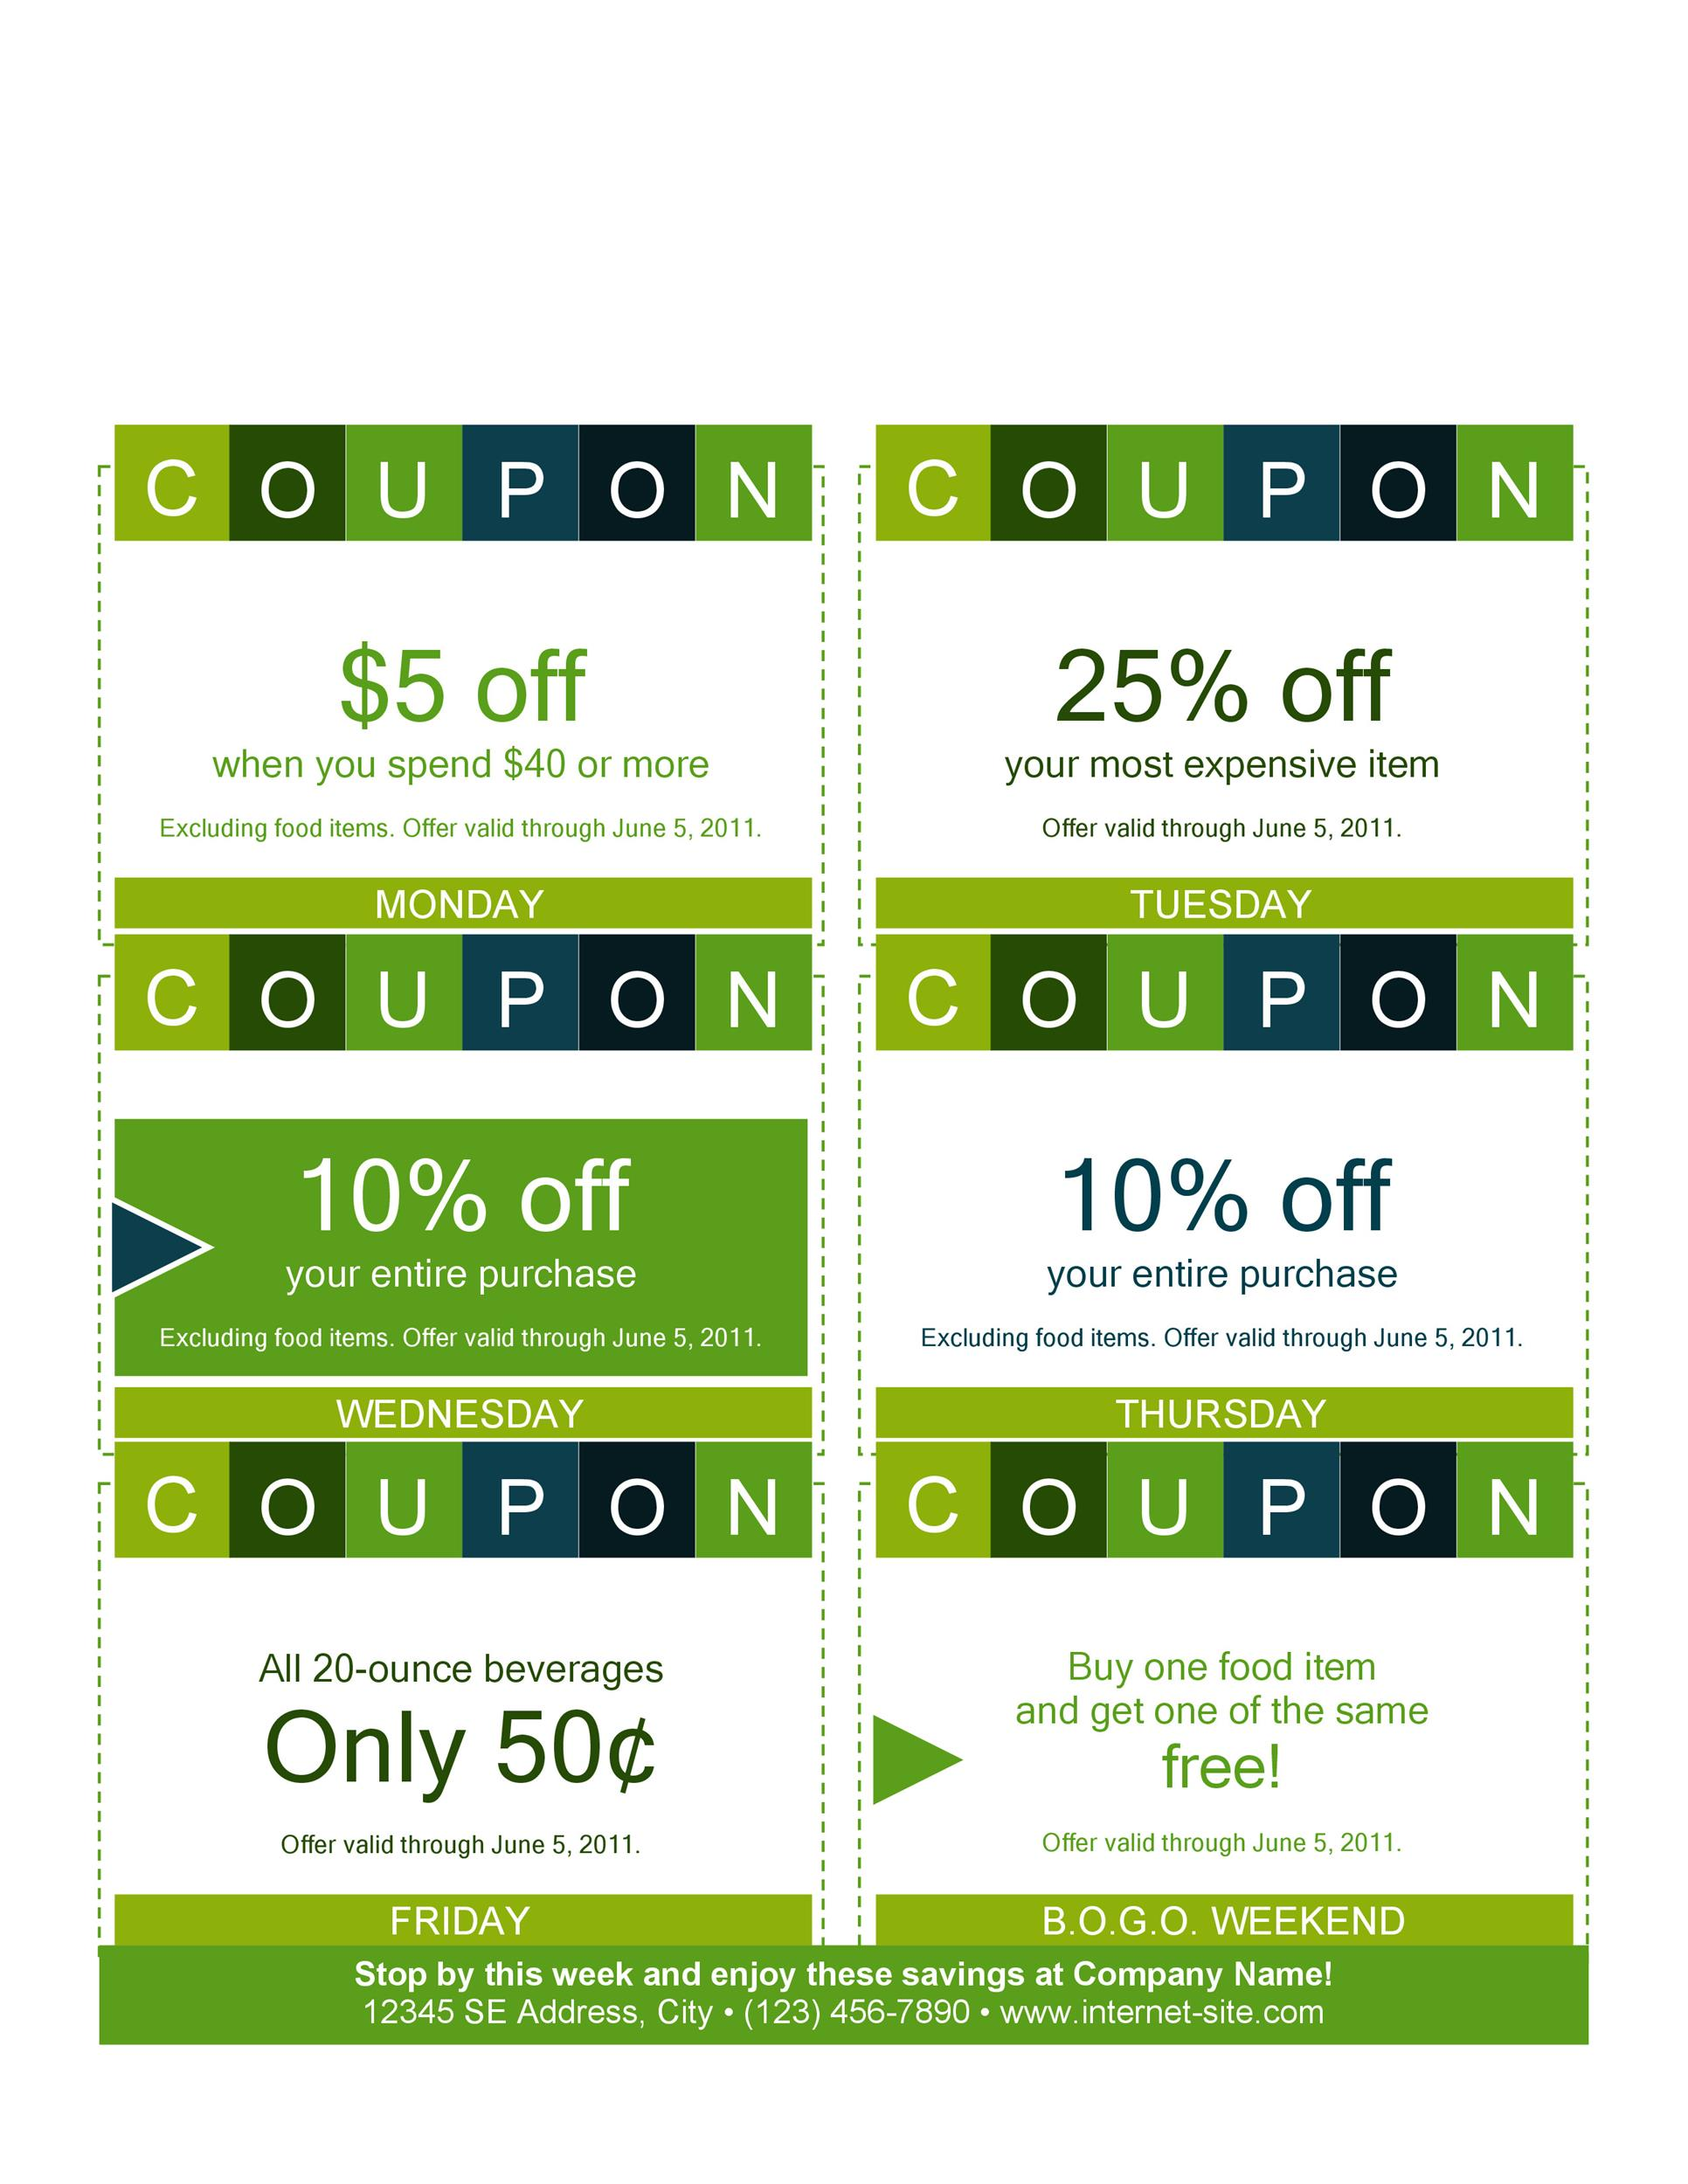 Blank Voucher Template. Blank Coupon Templates Printable Free